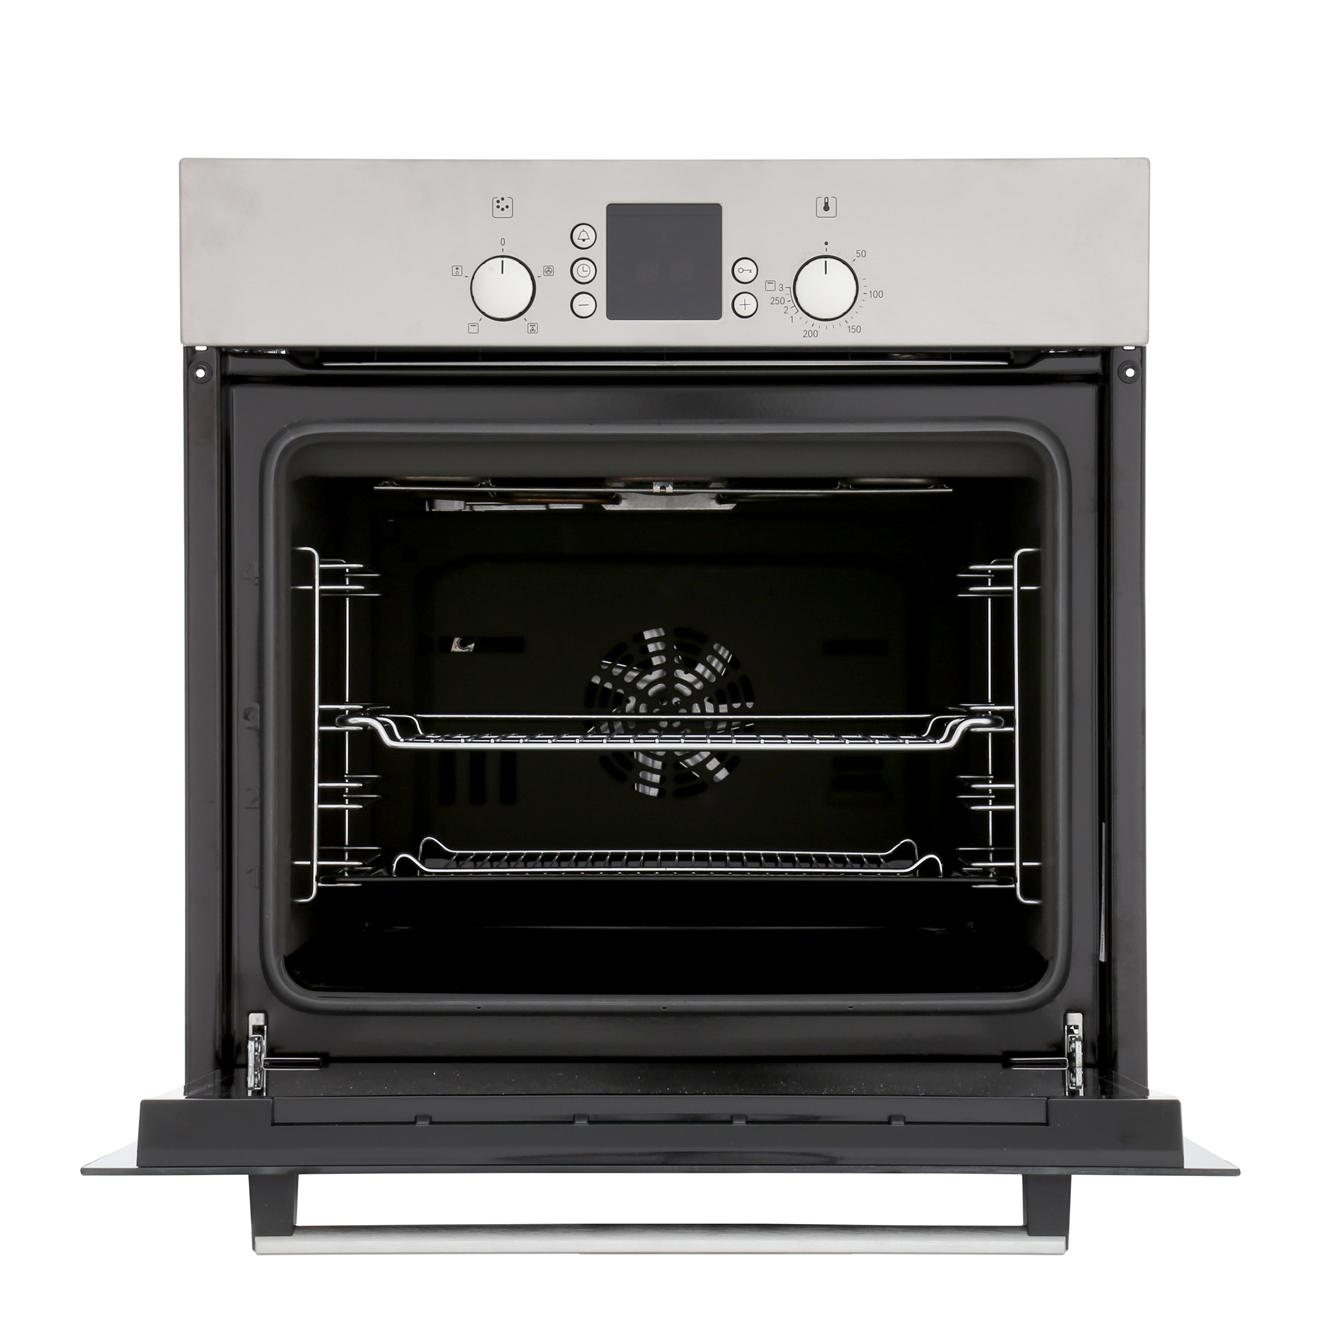 buy bosch serie 2 hbn531e1b single built in electric oven hbn531e1b stainless steel marks. Black Bedroom Furniture Sets. Home Design Ideas